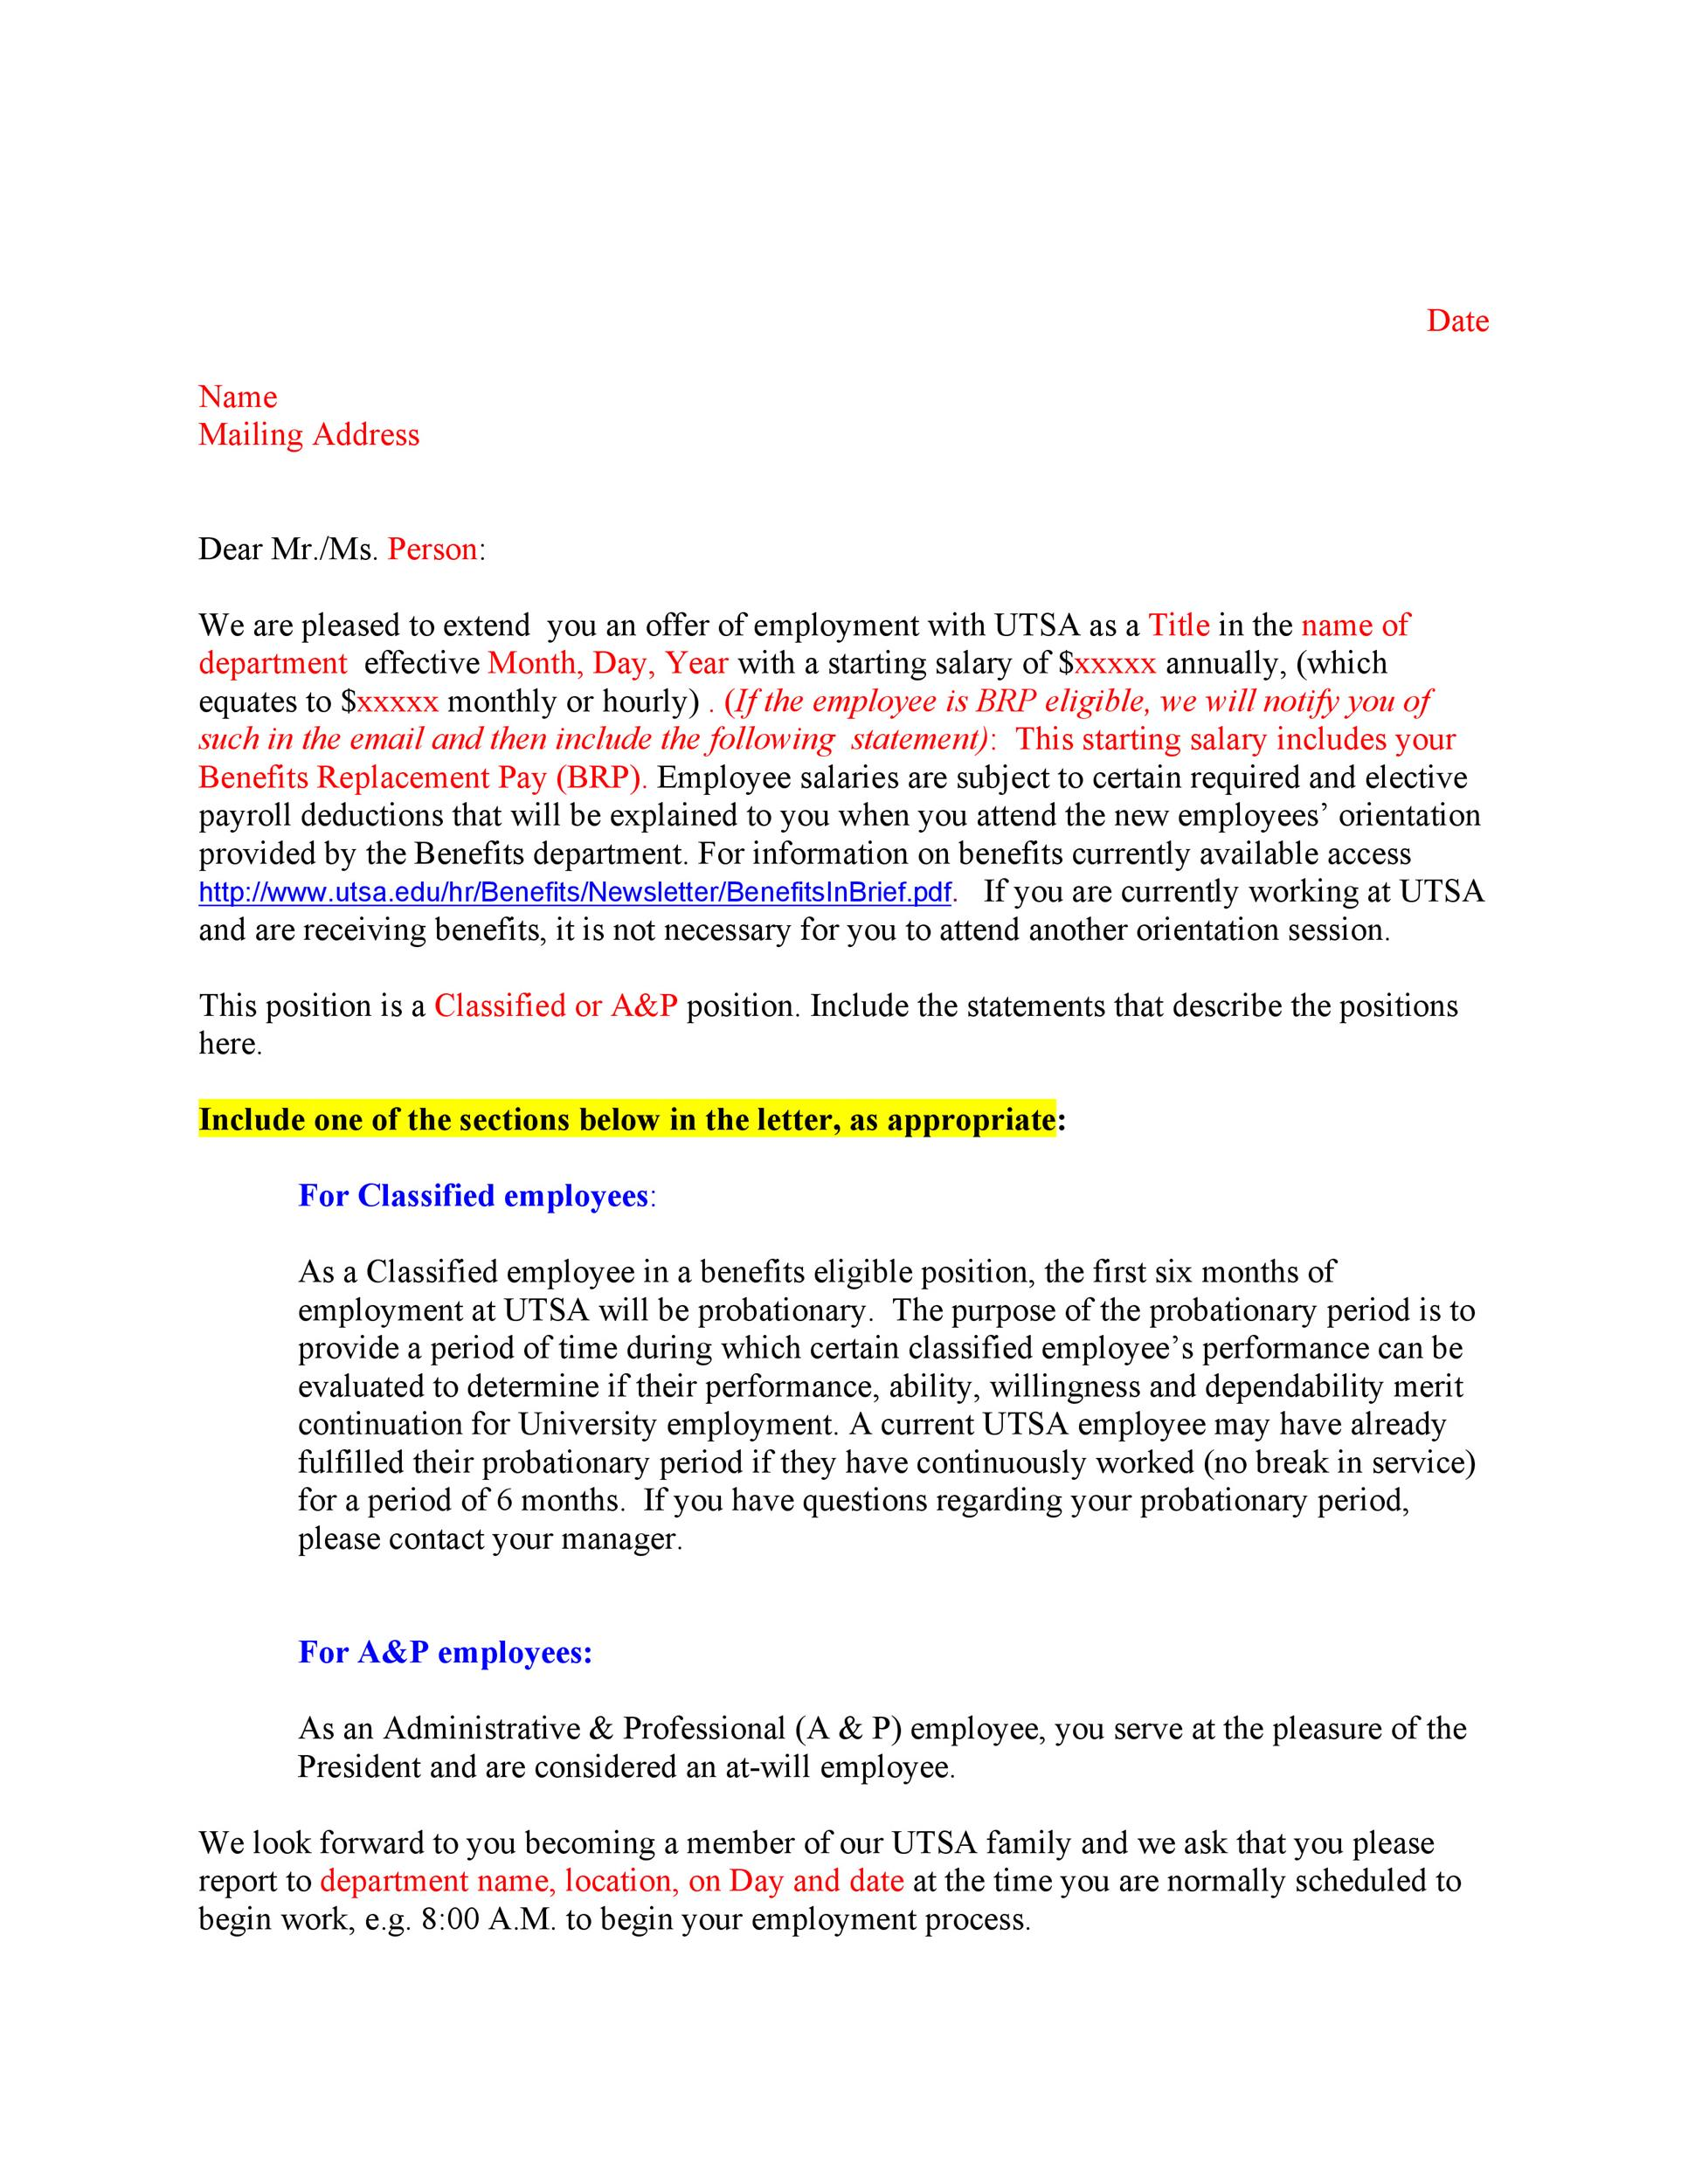 44 fantastic offer letter templates employment counter offer job offer letter 02